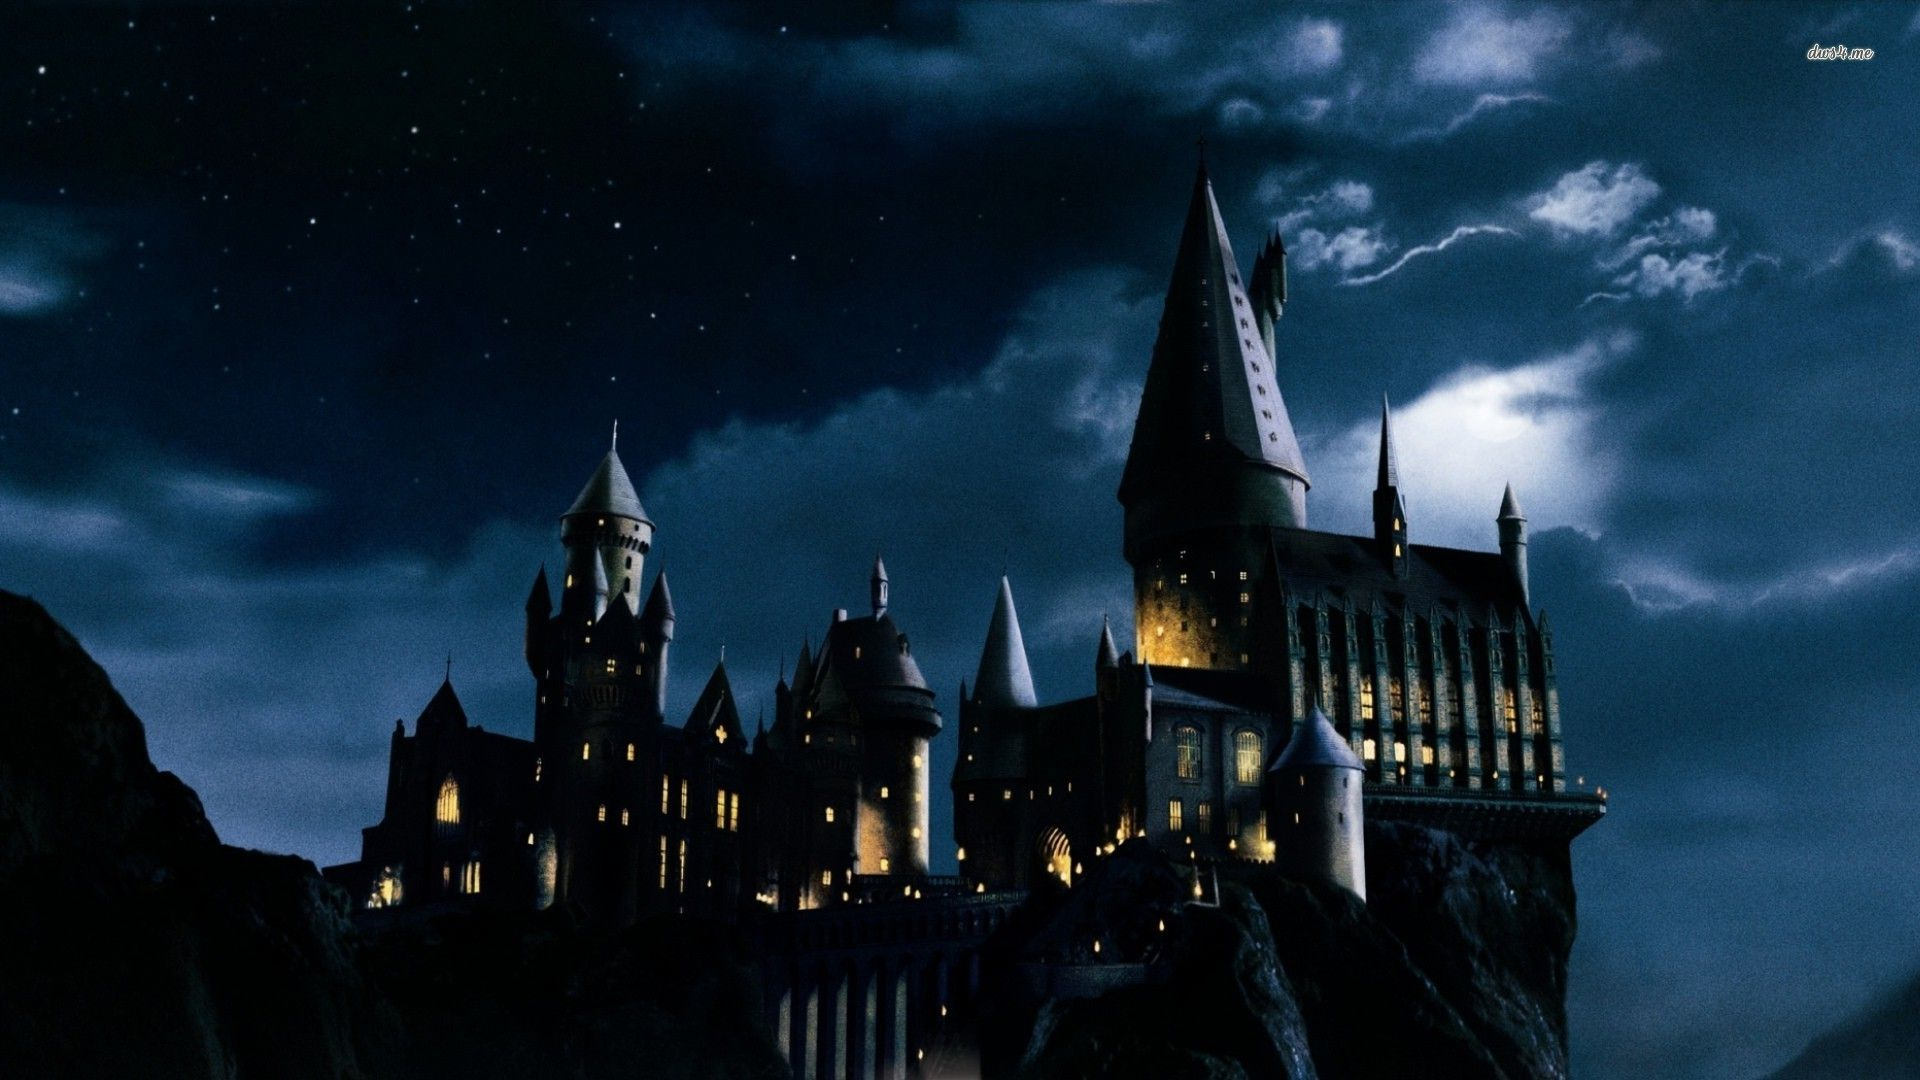 1920x1080 HD Hogwarts Wallpapers